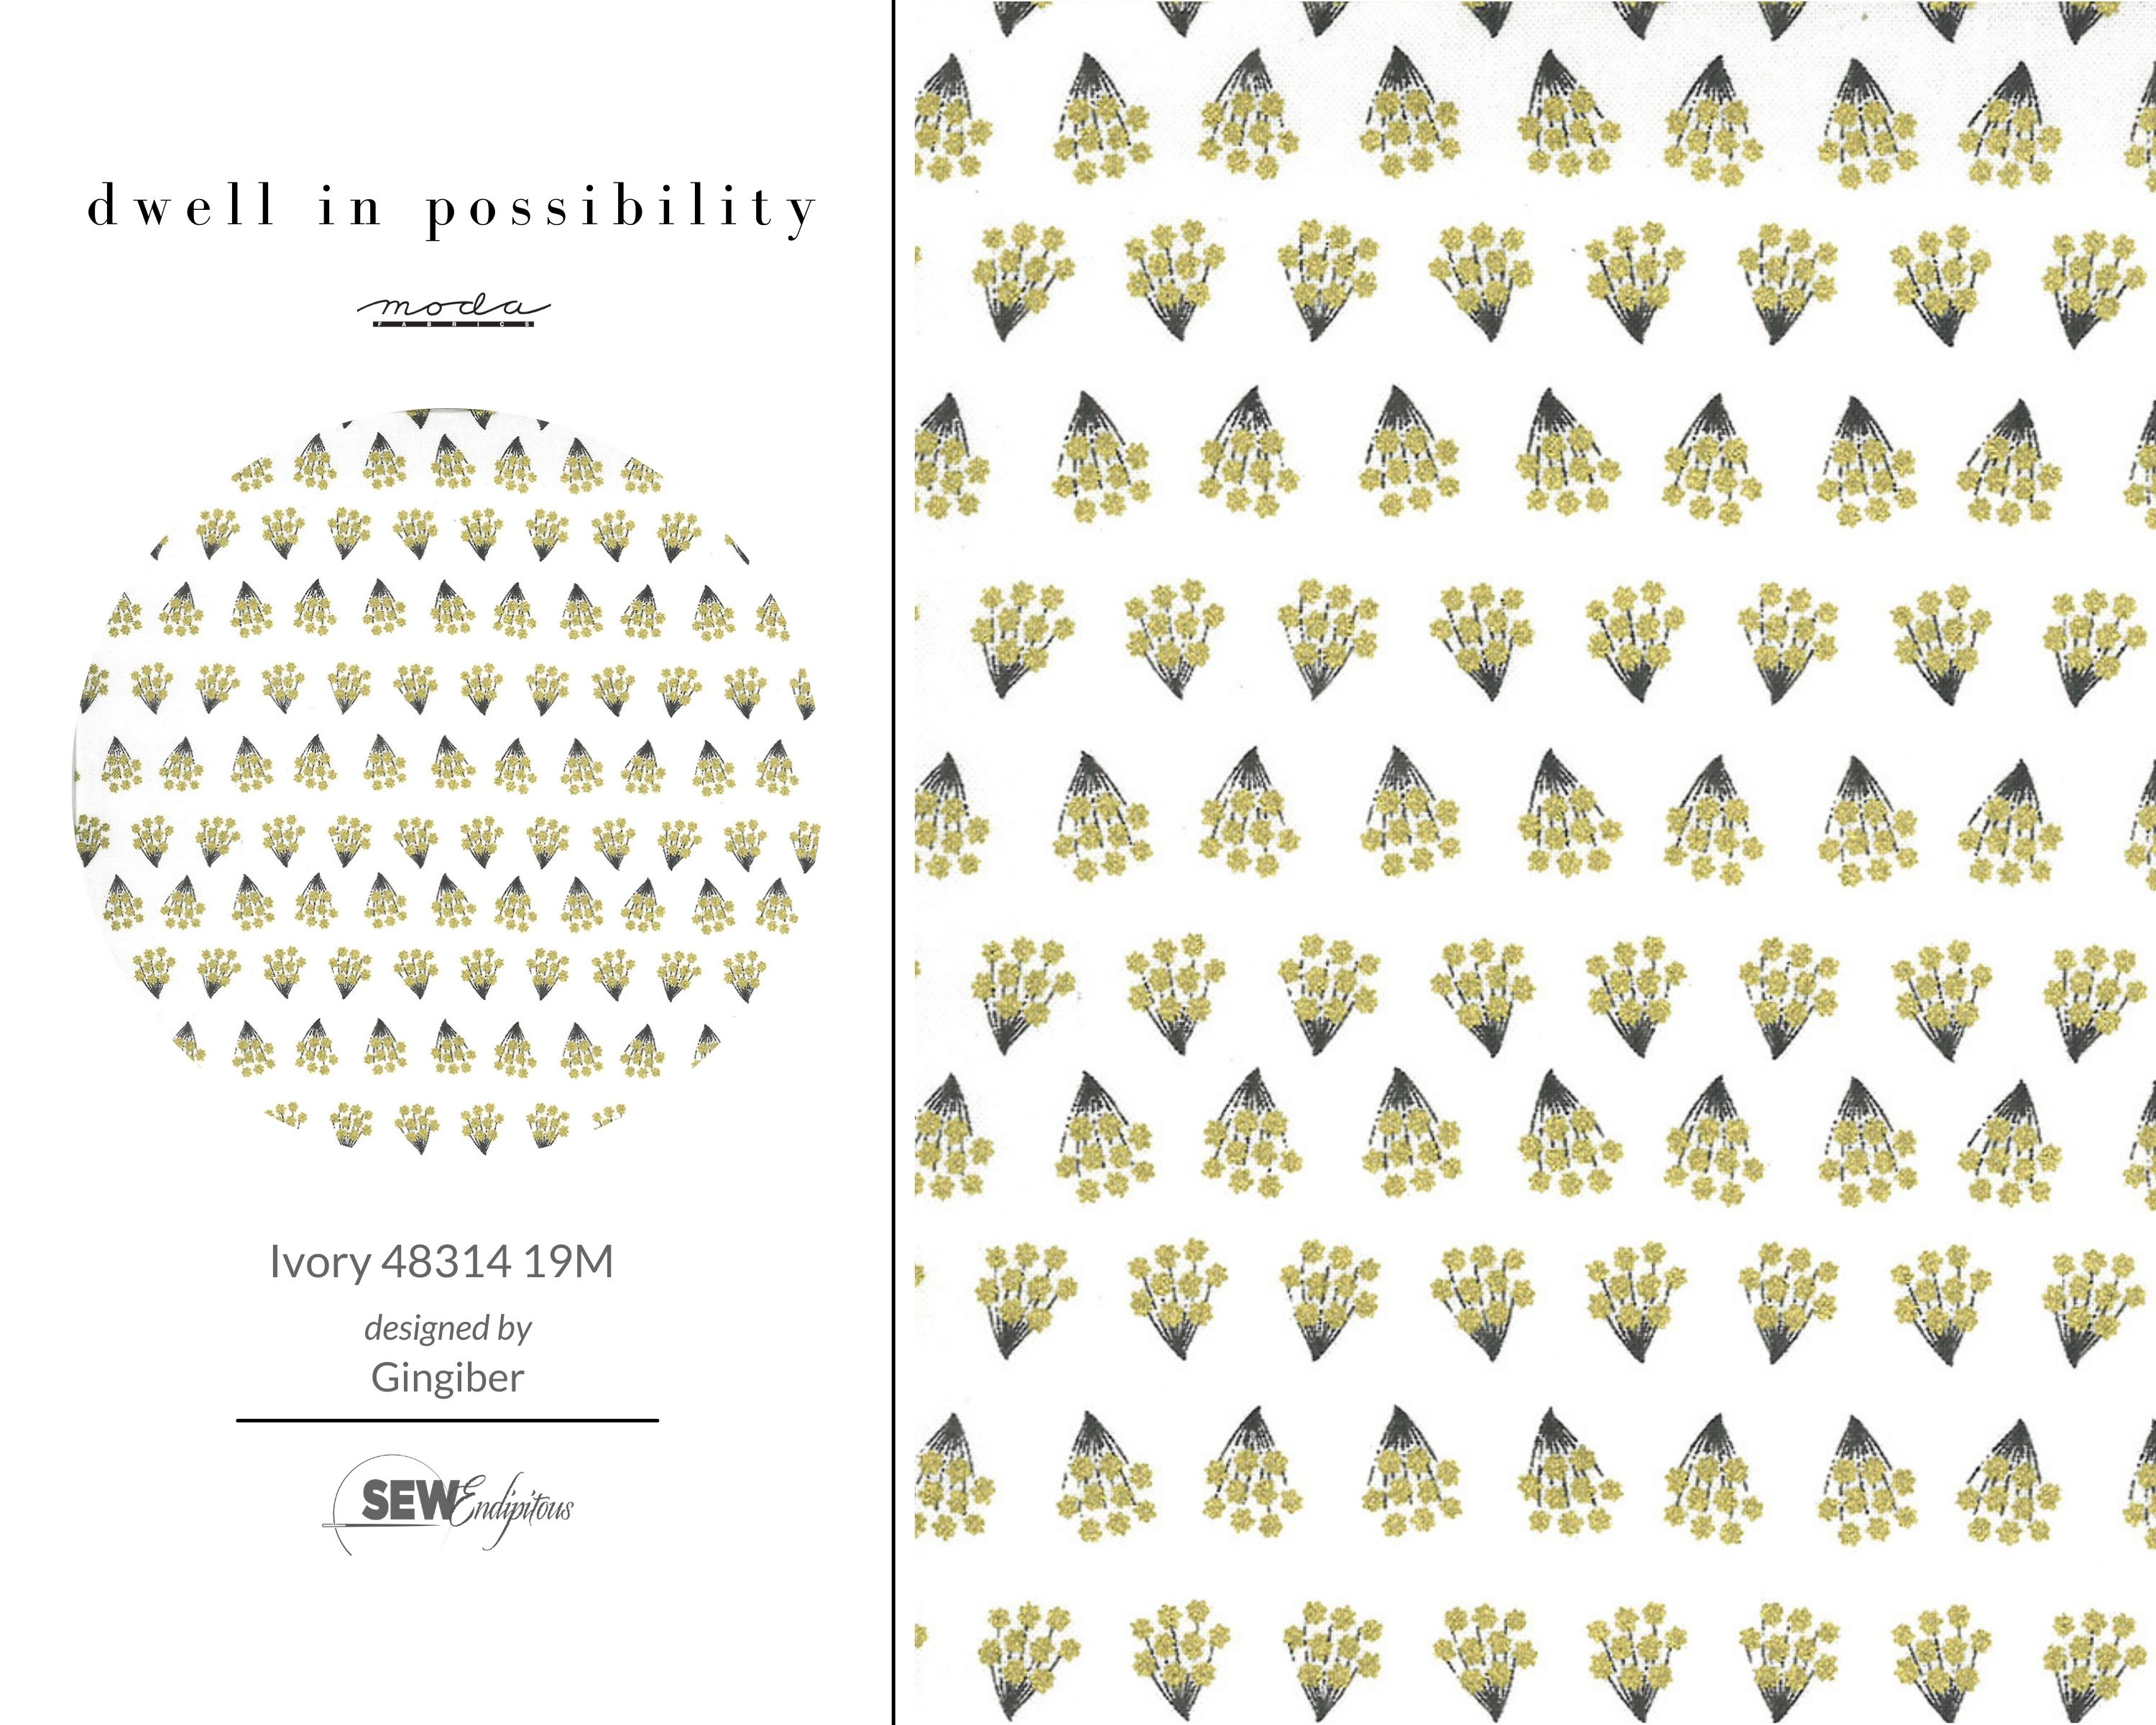 Dwell in Possibility - Ivory 48314 19M Metallic